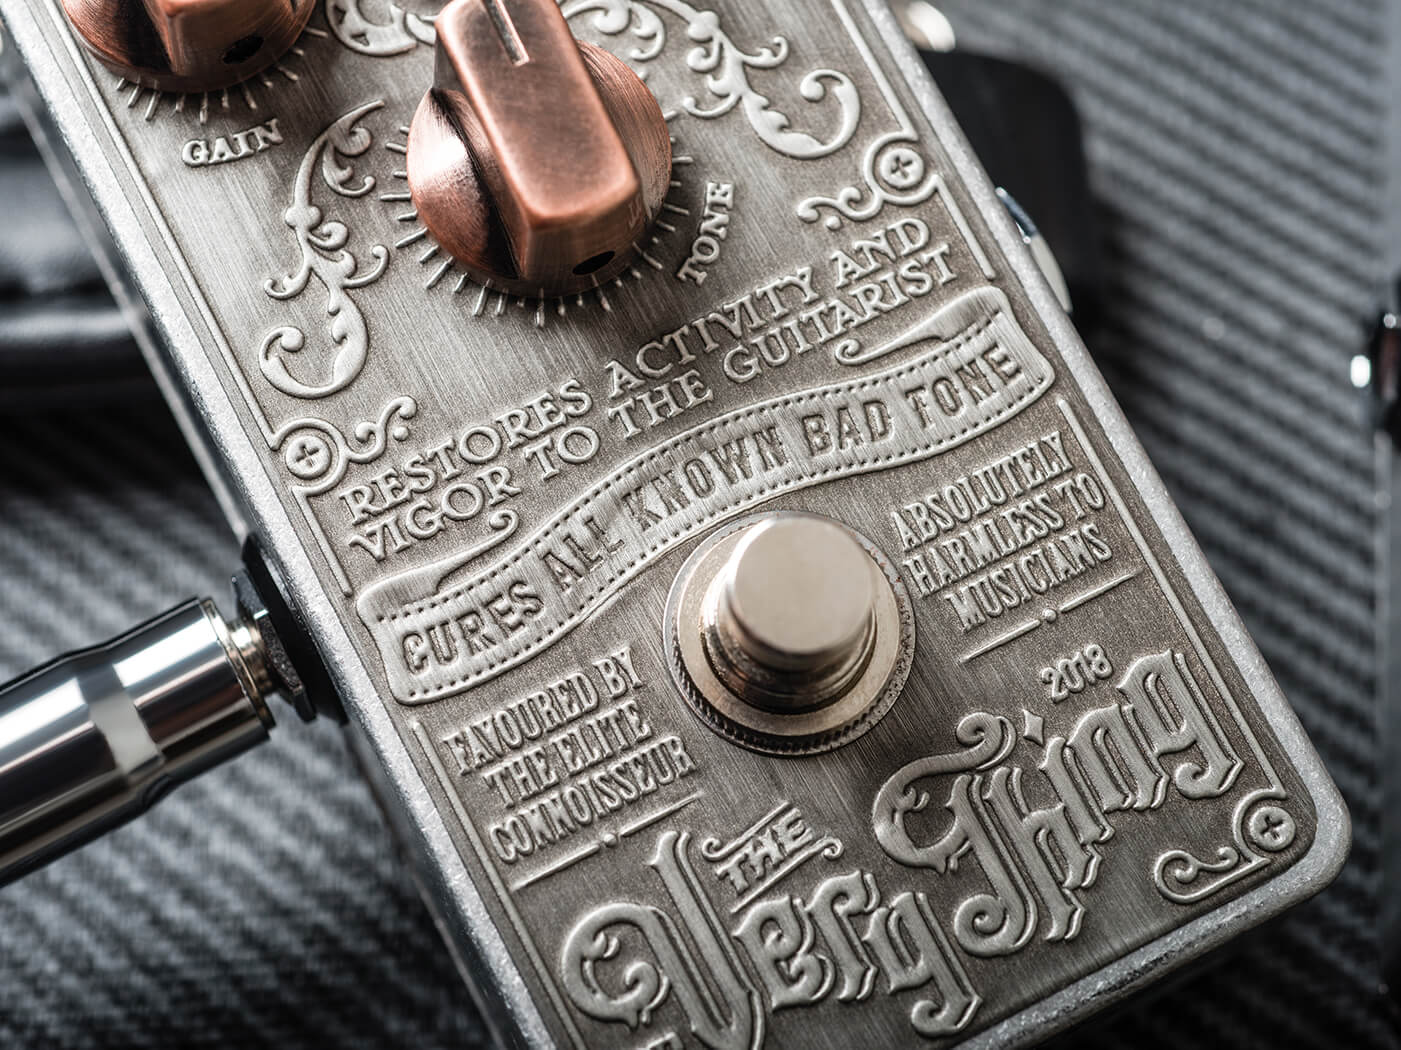 The Very Thing pedal